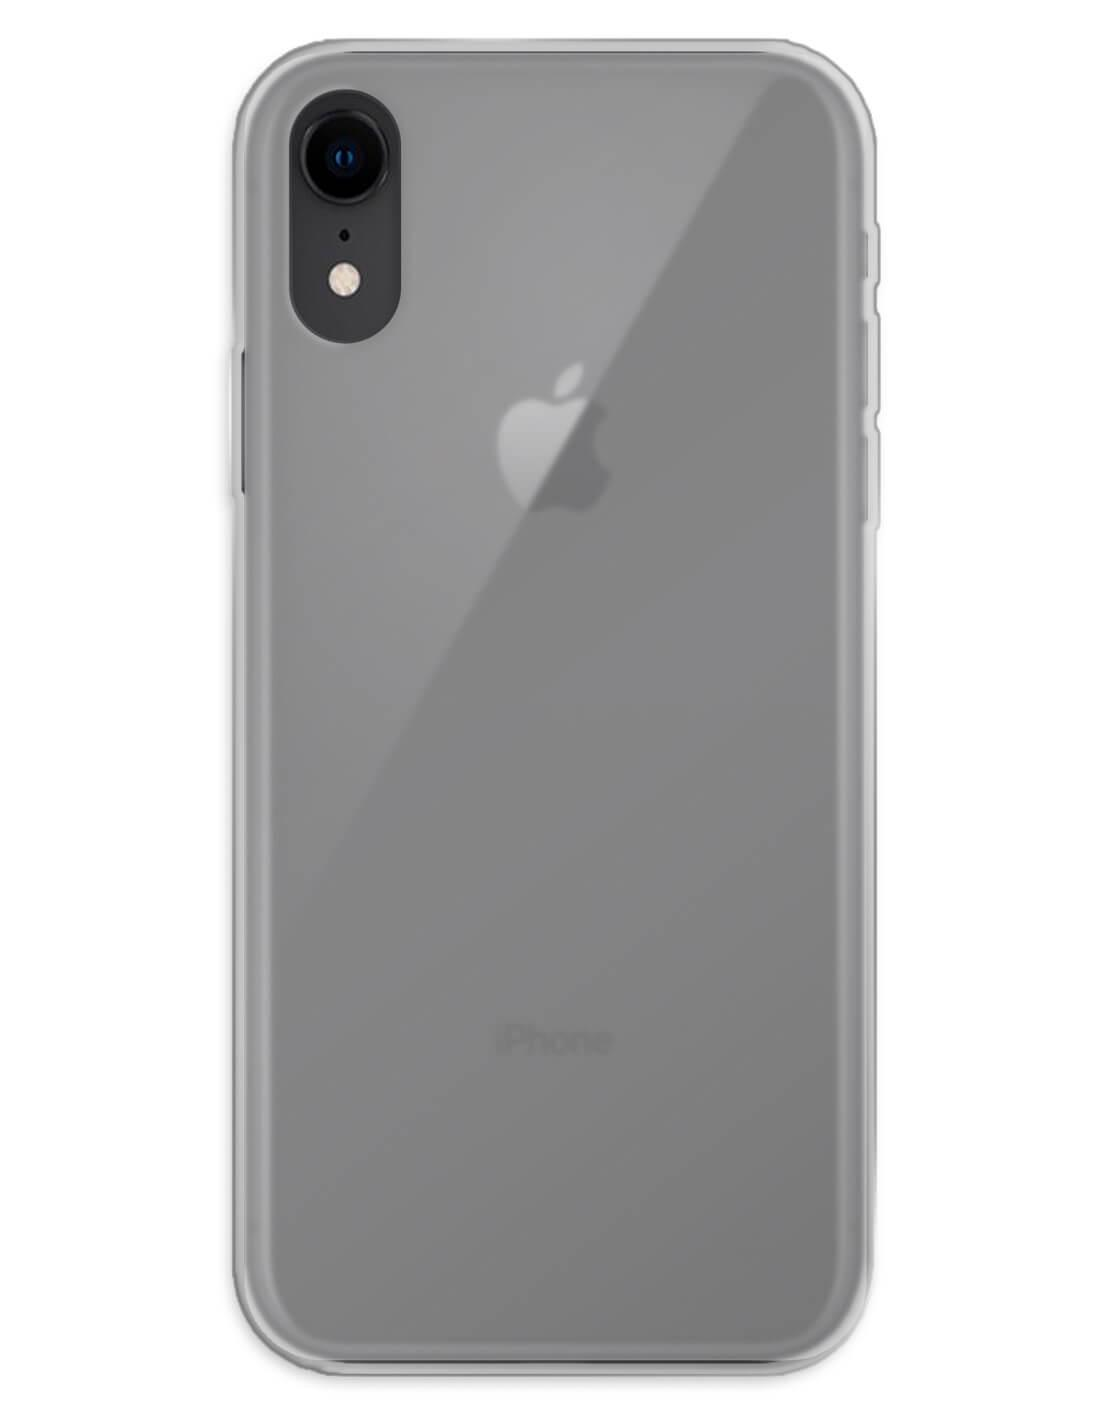 Apple iPhone XR Funda Silicona Mate